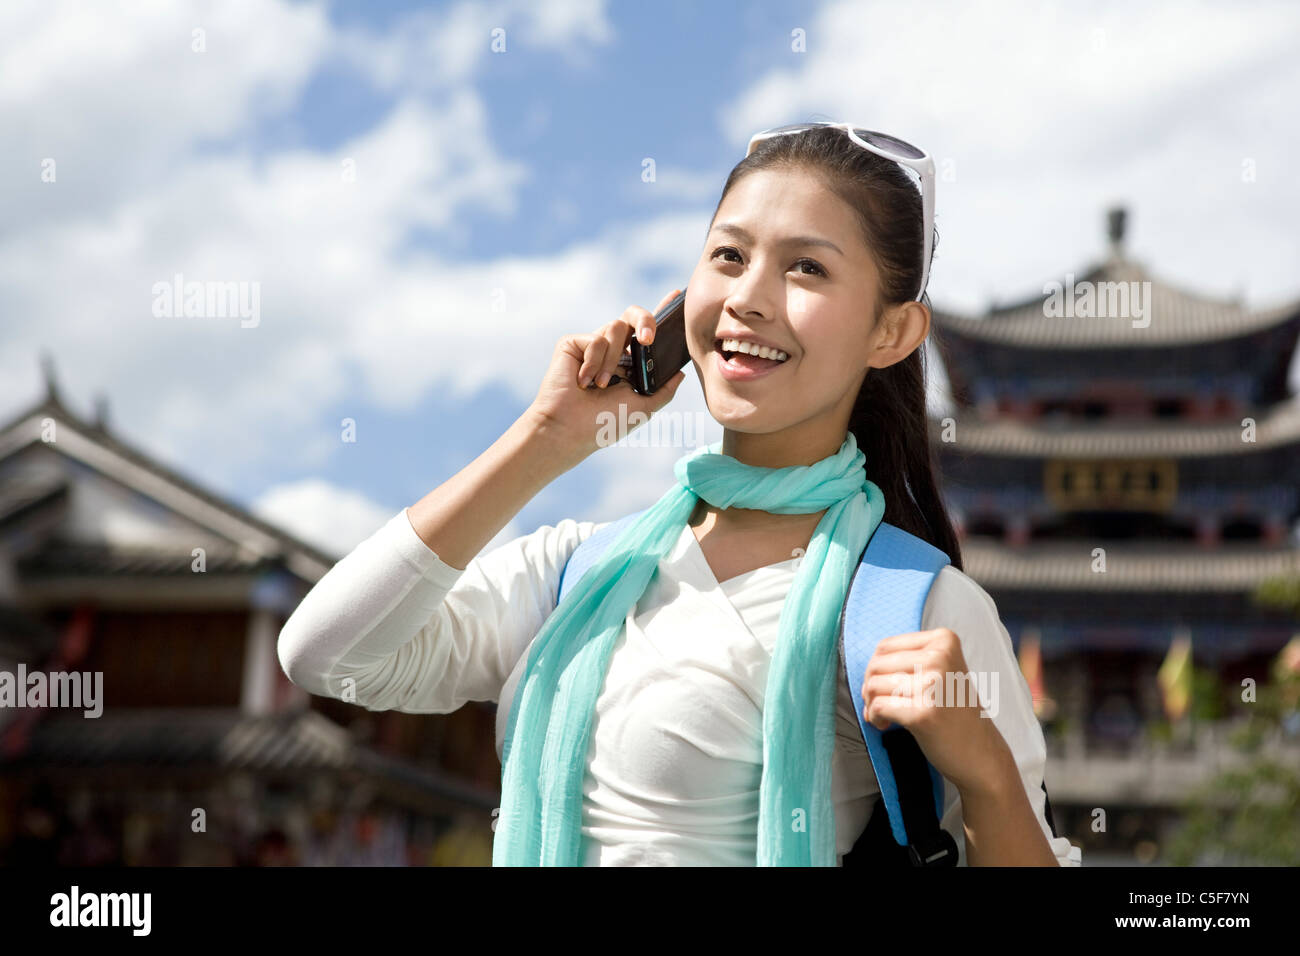 Young woman using cellphone - Stock Image